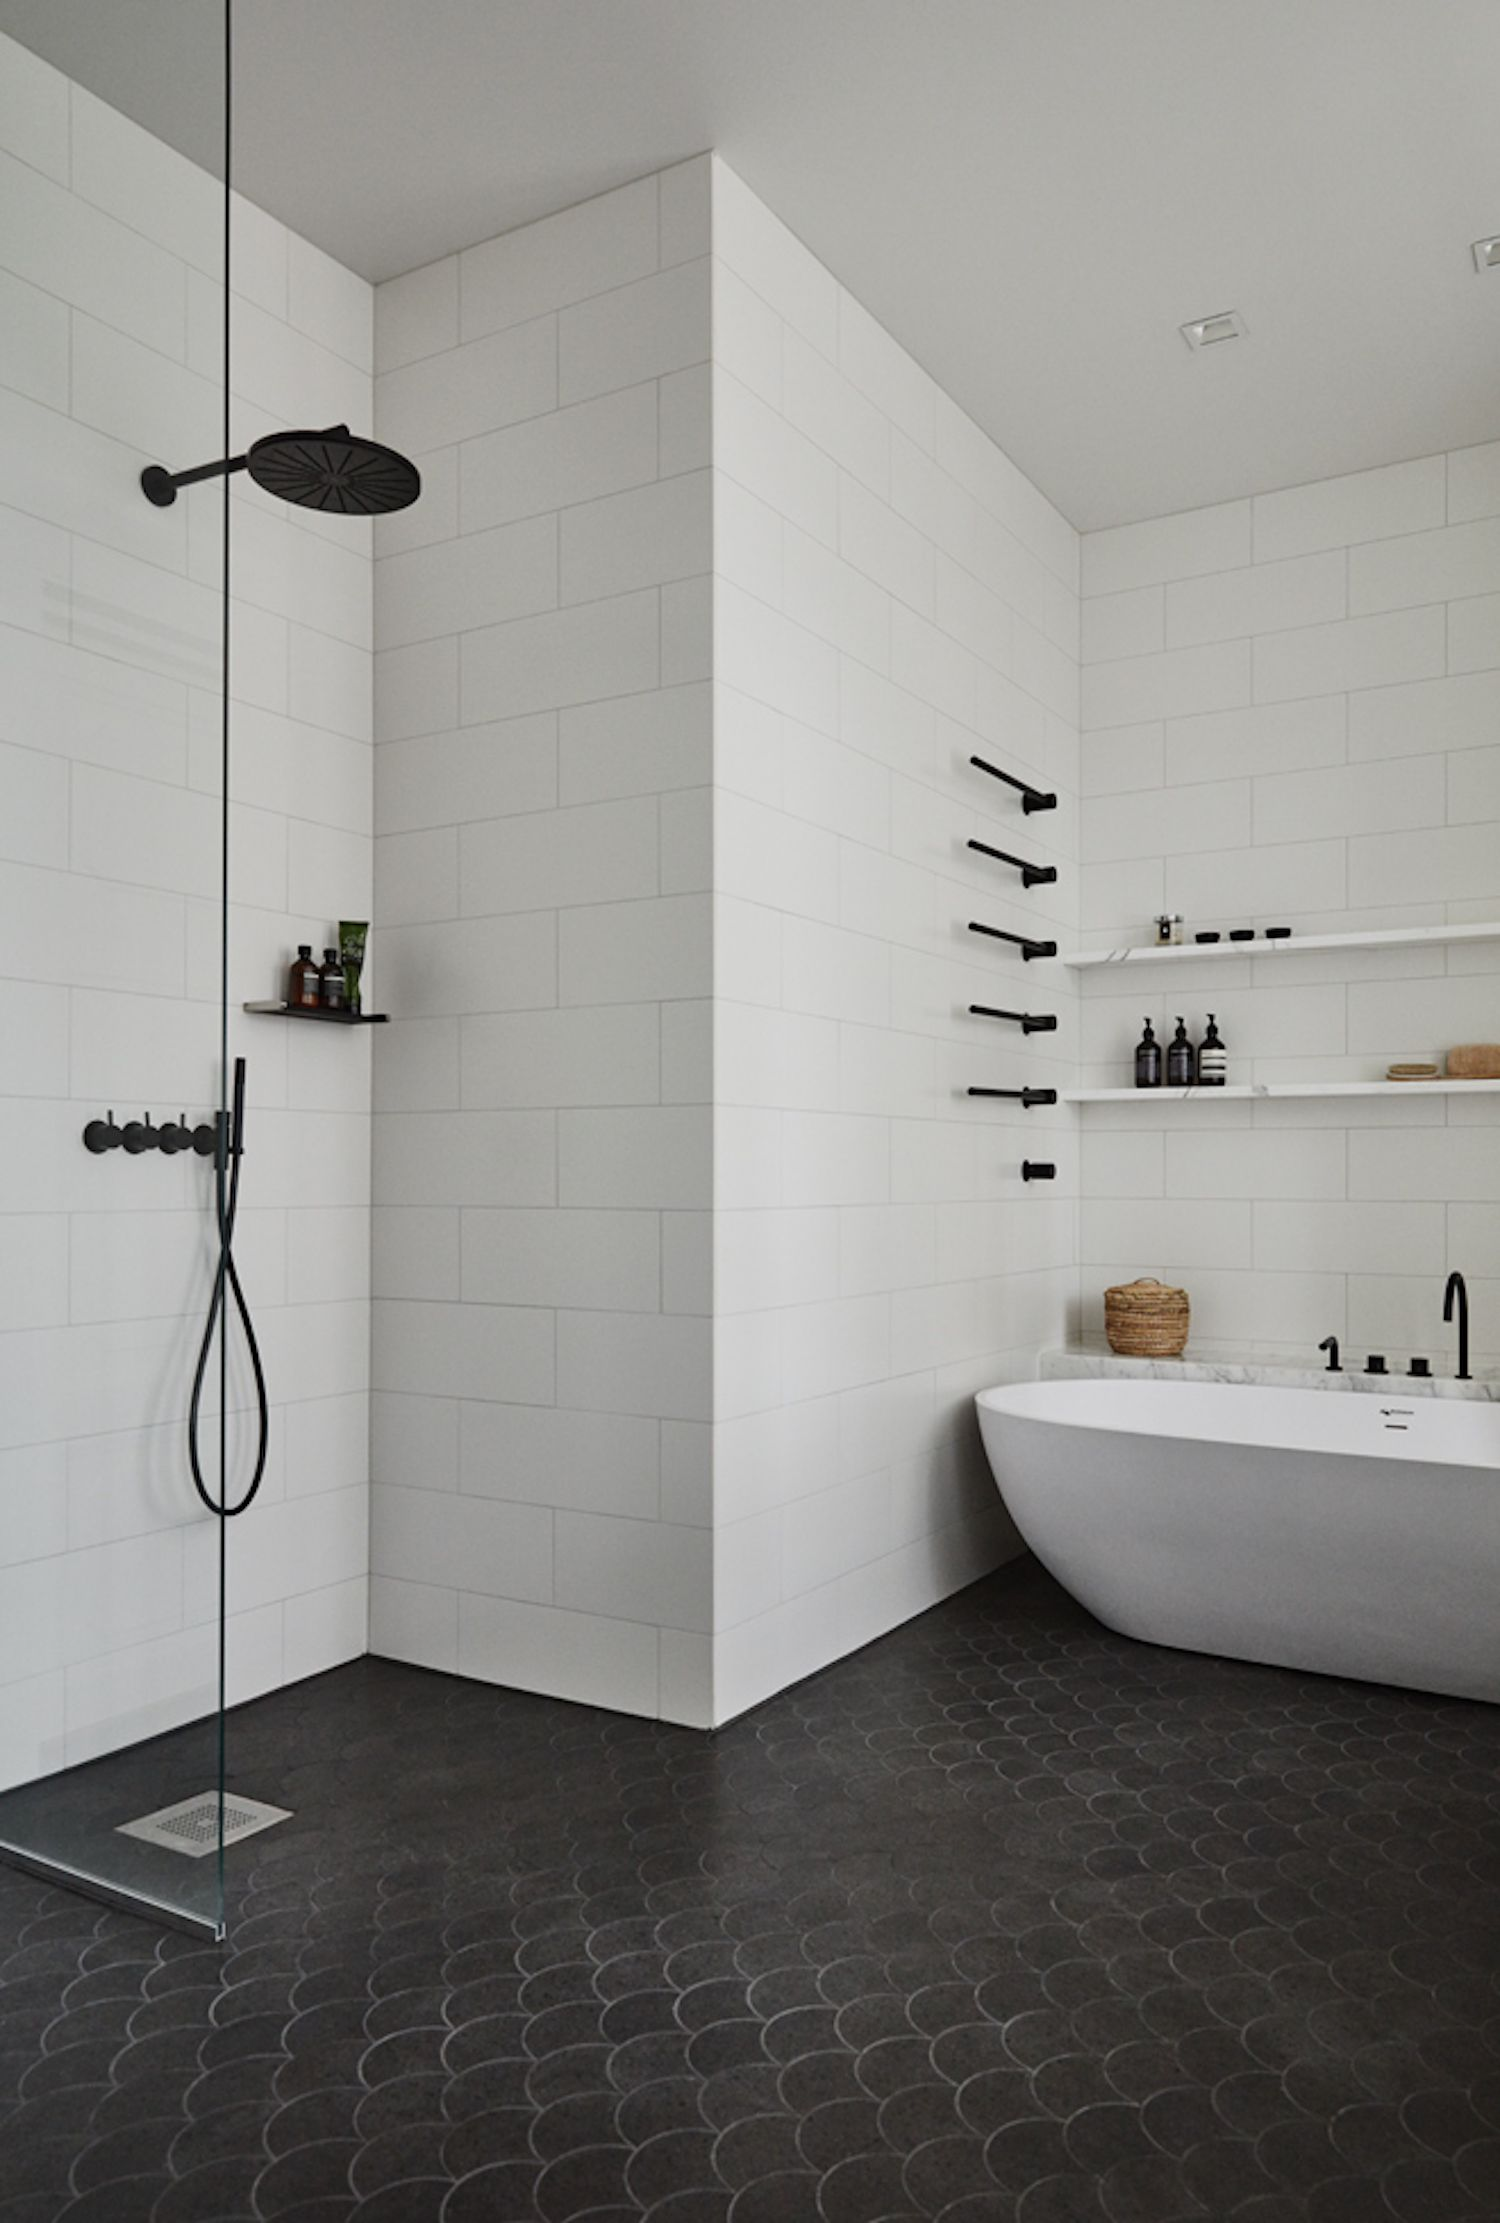 Striking black fixtures and fish scale tile in the bathroom of a home in  Lahti  Finland with interior design by Joanna Laajisto Lahti Home   Joanna Laajisto   est Living   spaces   bathroom  . In The Bathroom. Home Design Ideas